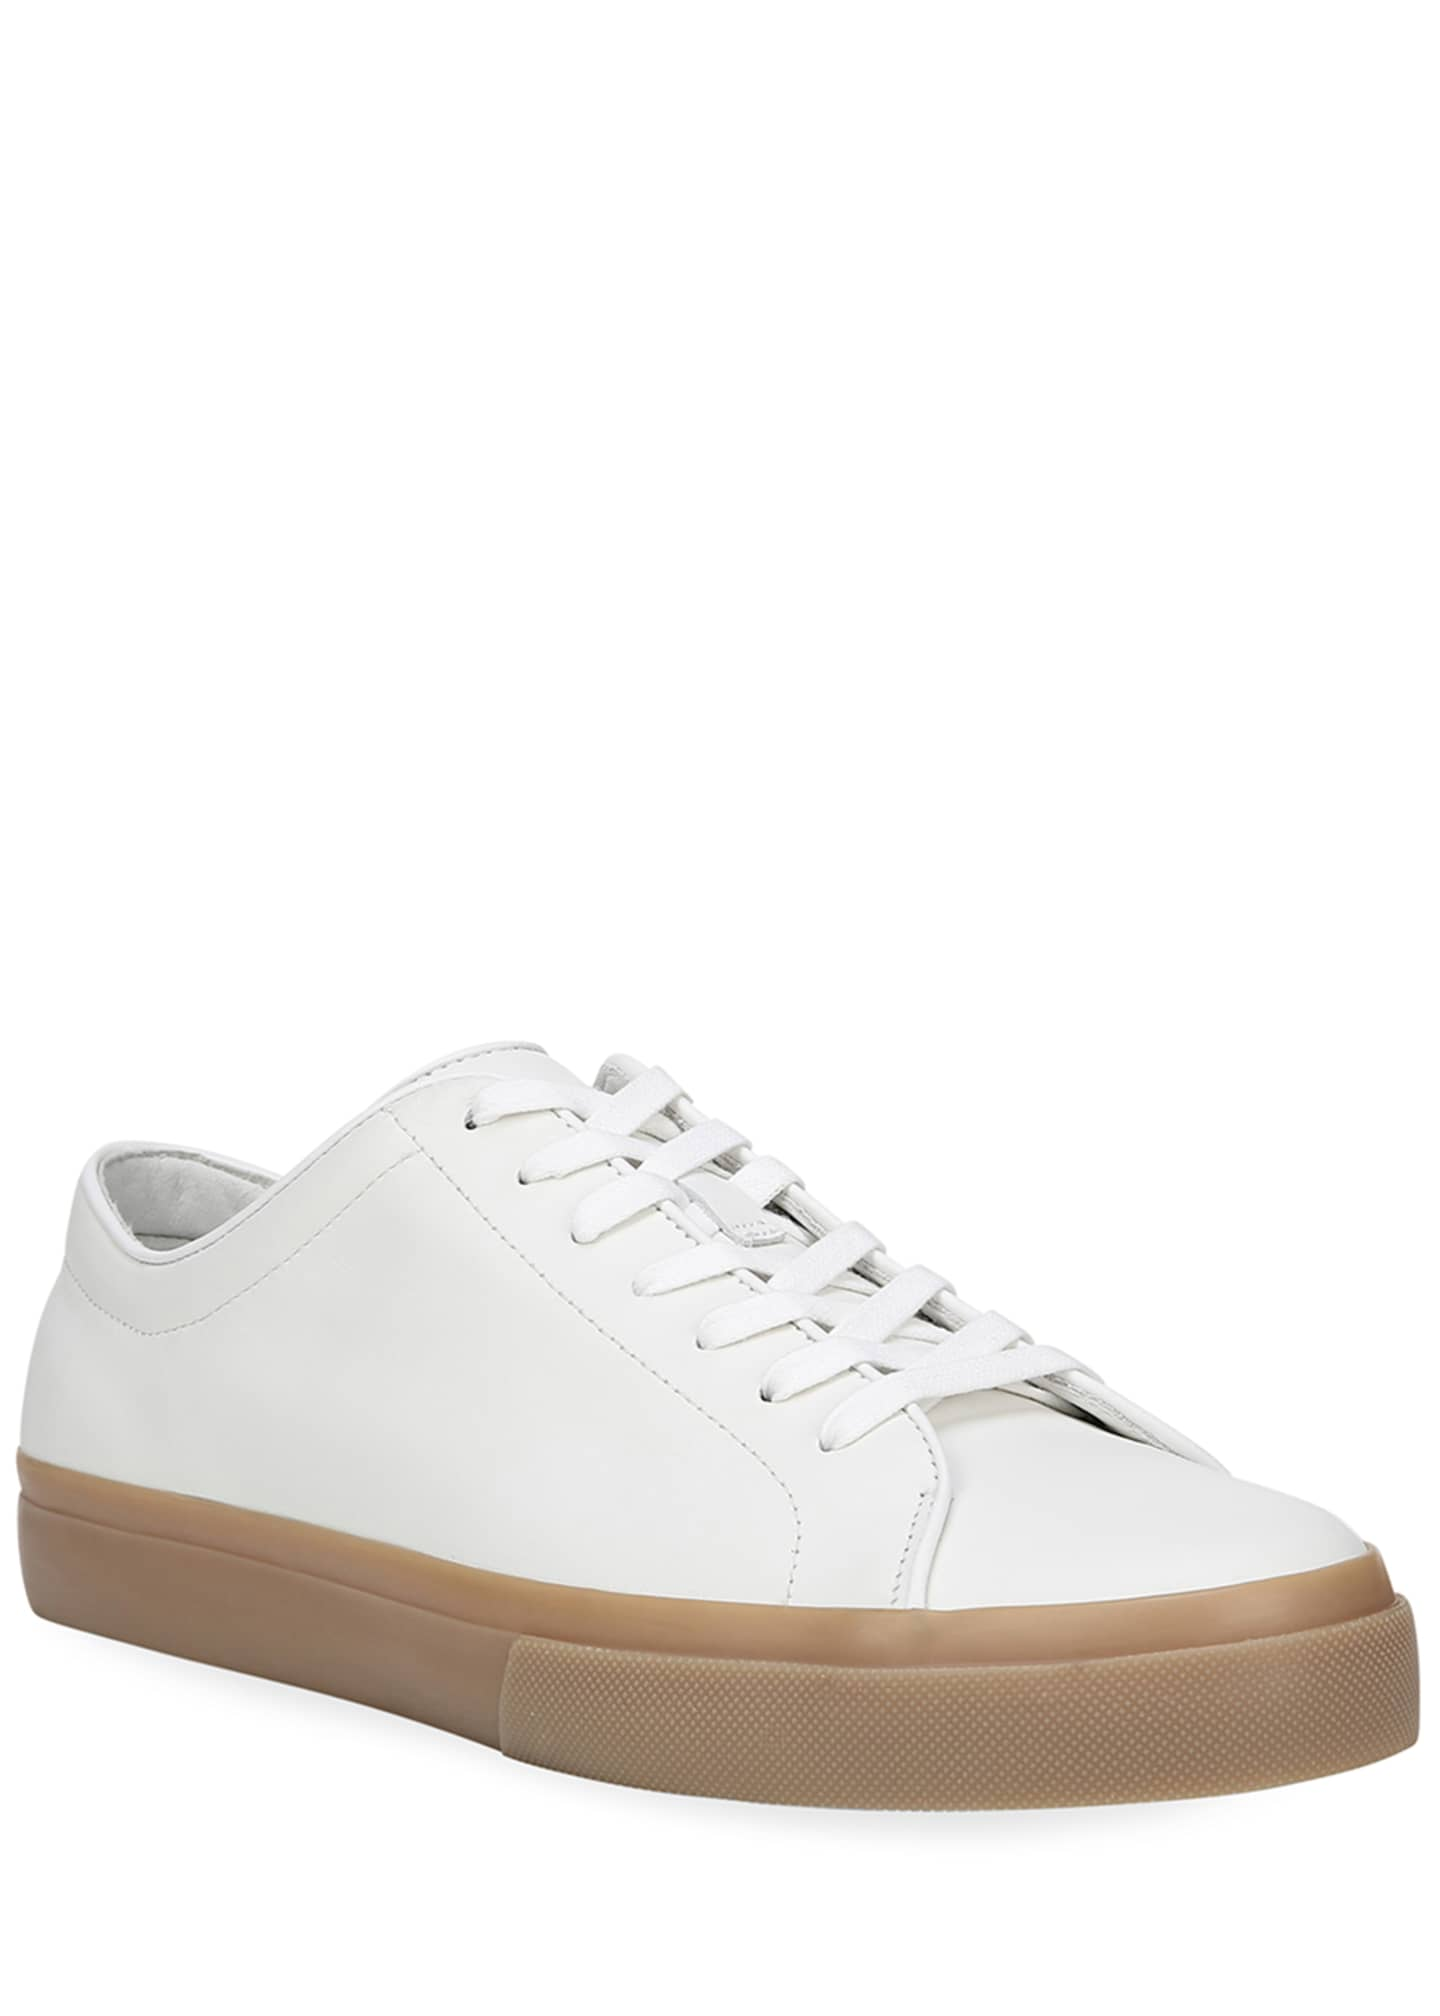 Image 3 of 5: Men's Farrell Calf Leather Low-Top Sneakers